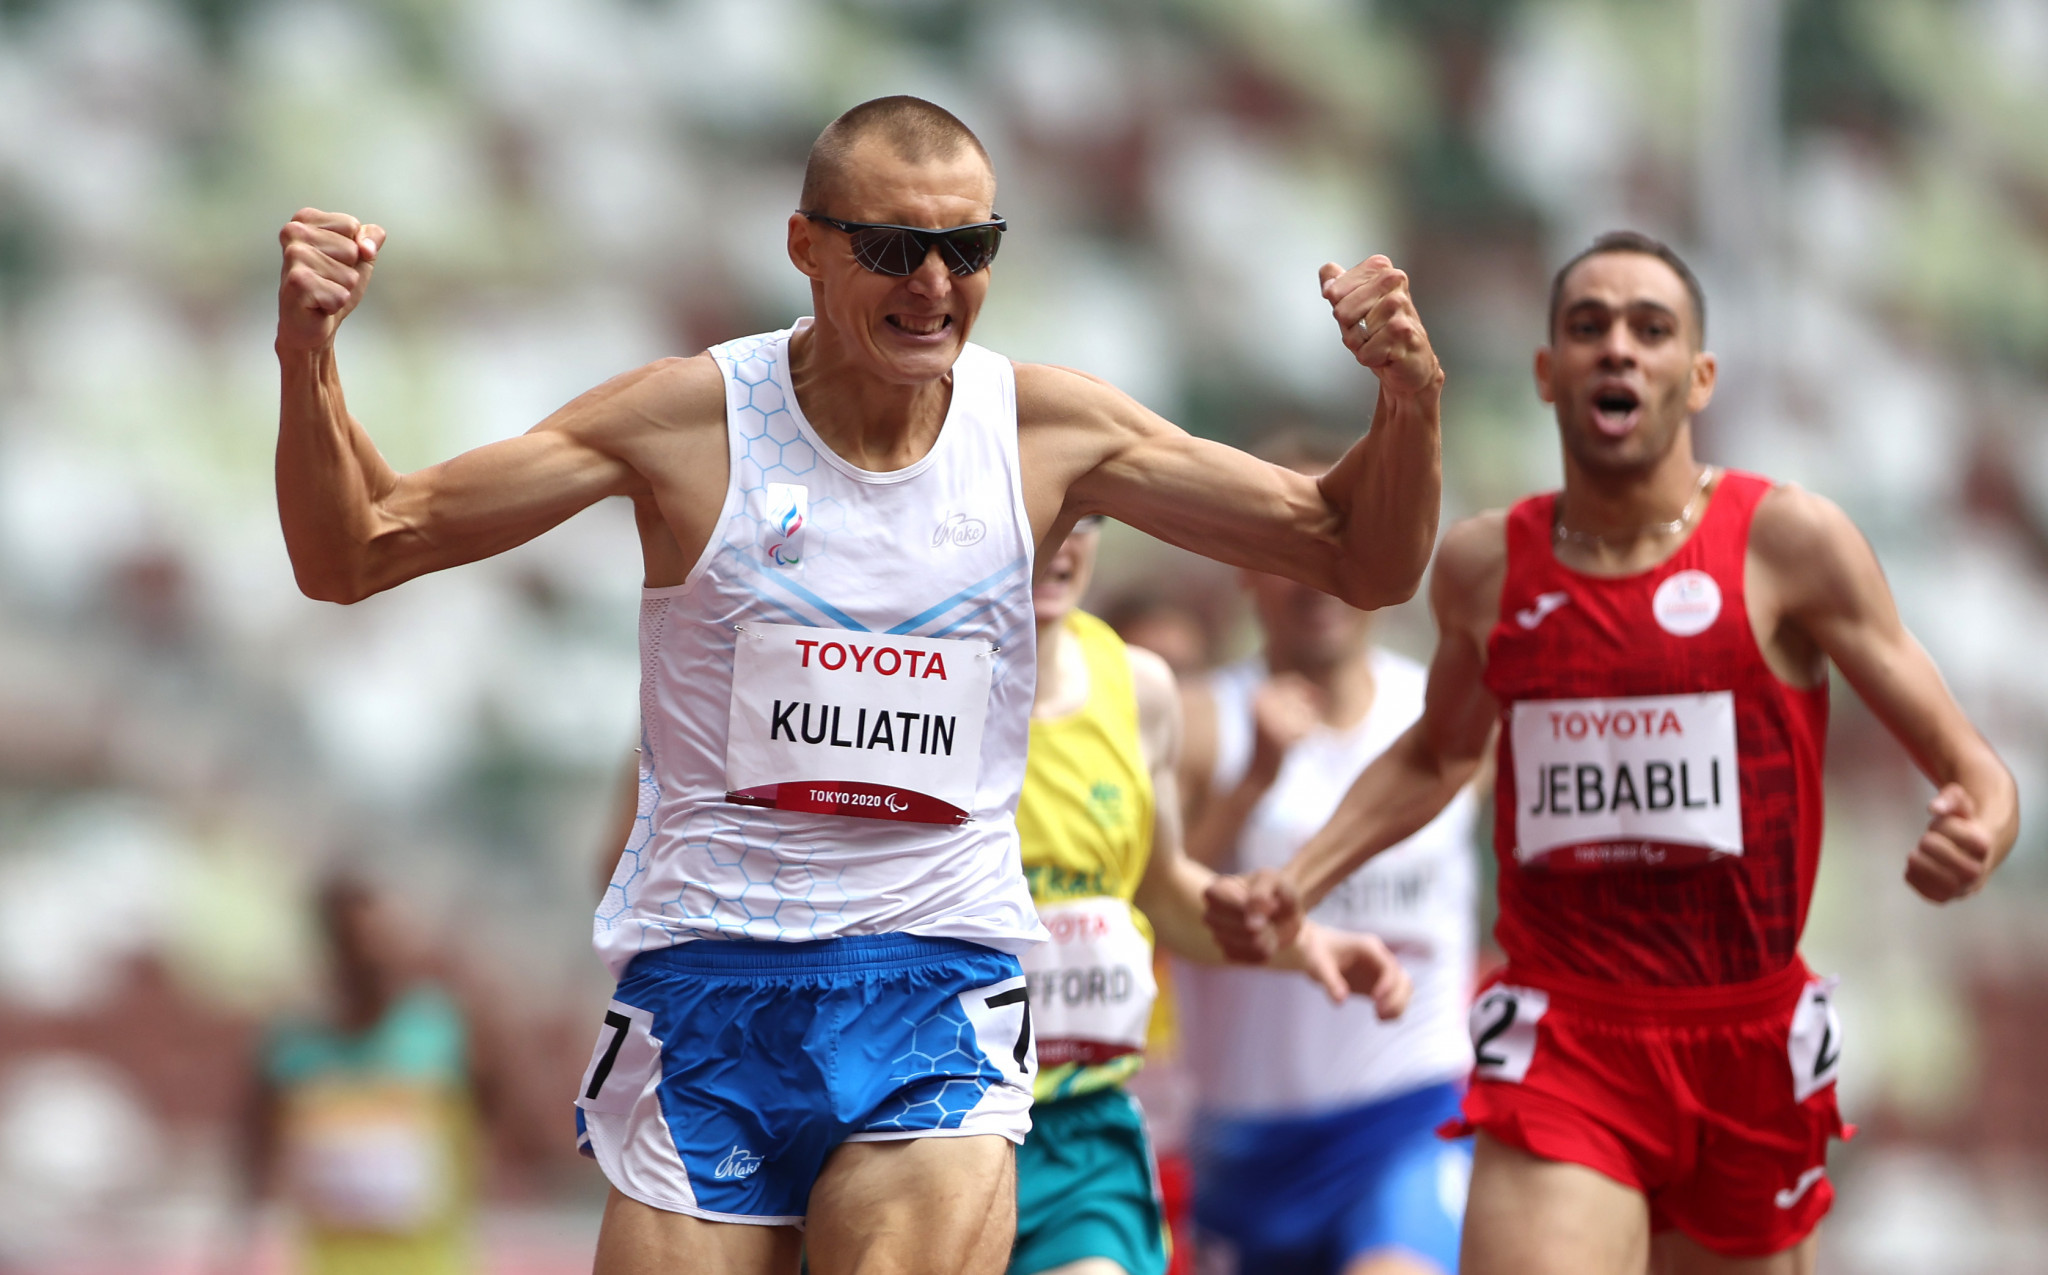 Anton Kuliatin saw off challenges from Rouay Jebabli and Jaryd Clifford to clinch gold in the men's T13 1500m ©Getty Images